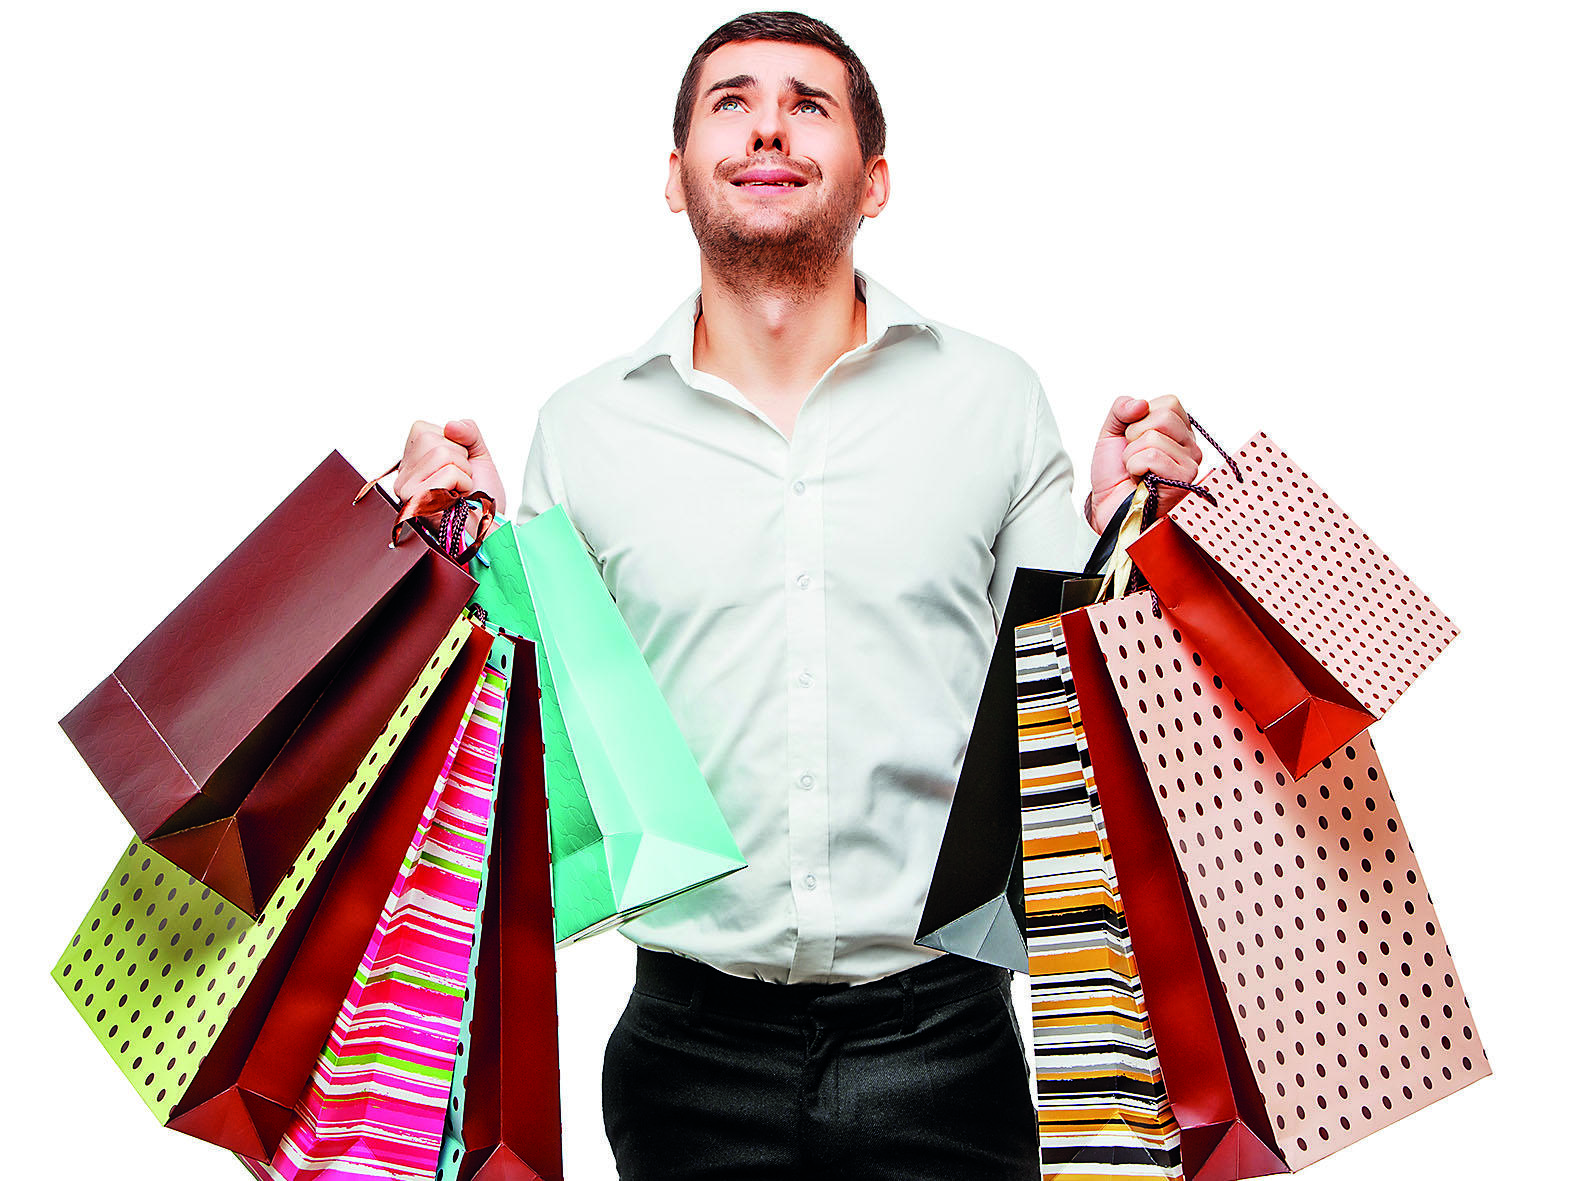 'Men are compulsive shoppers, too'